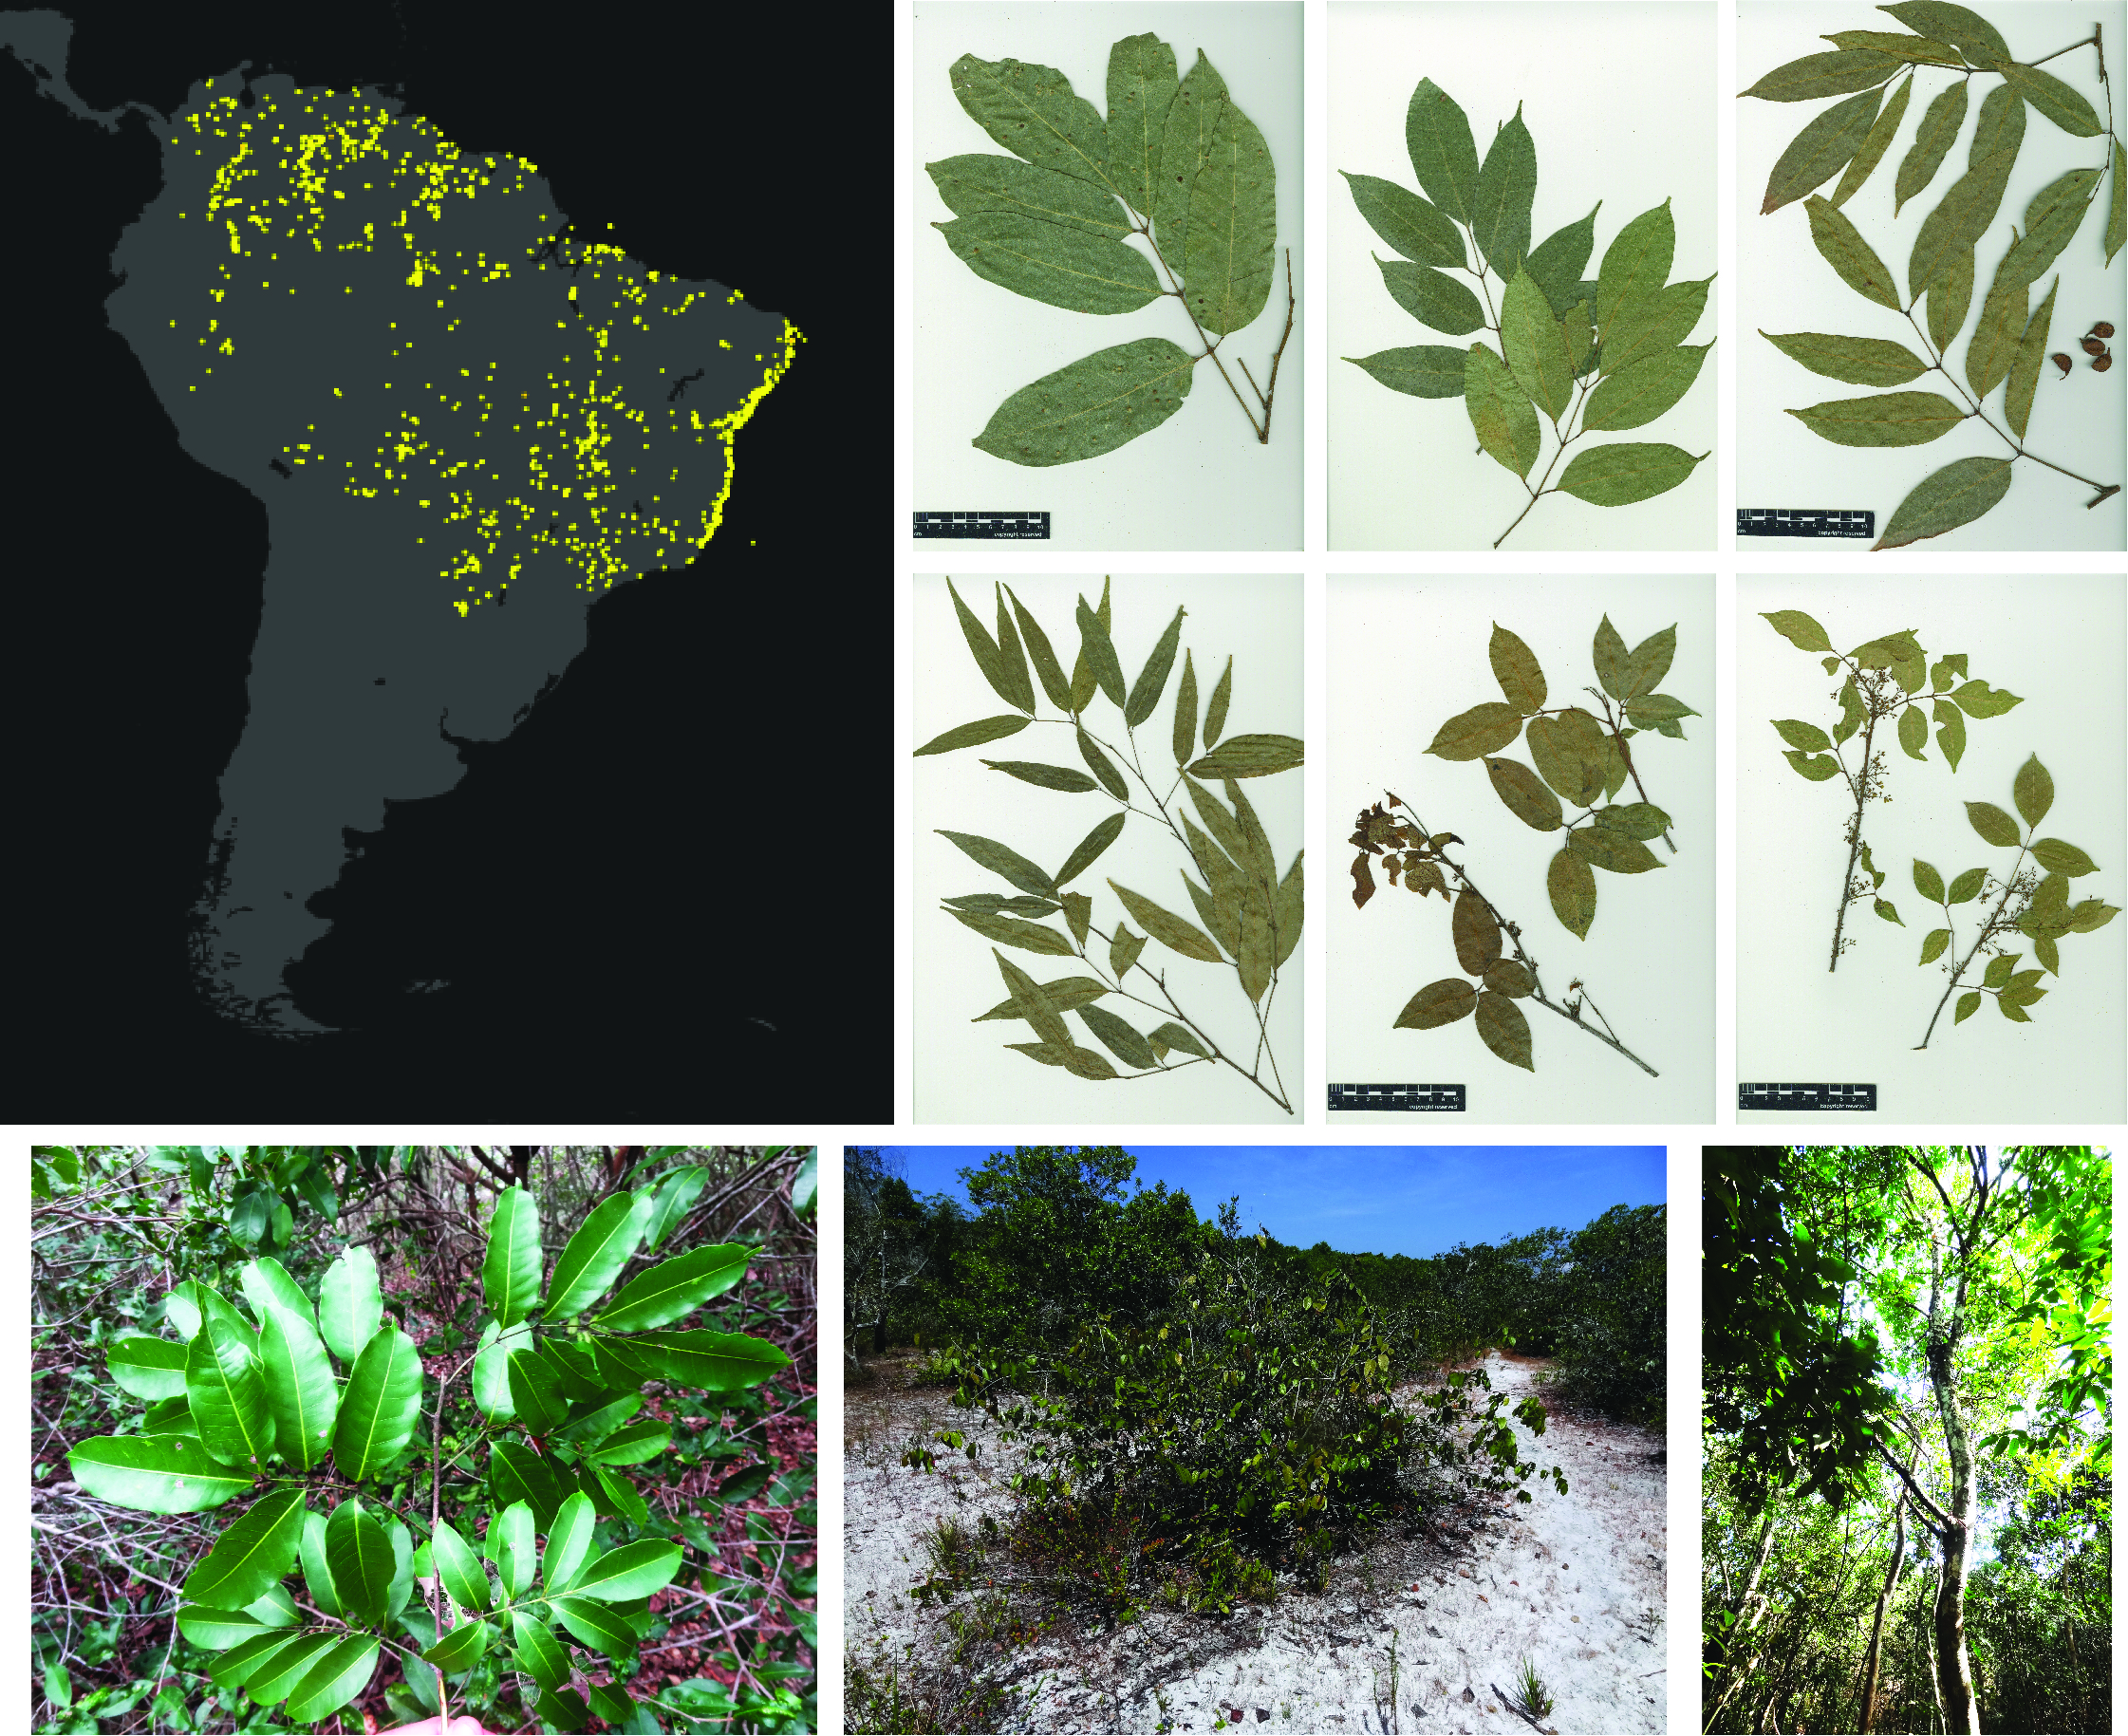 Study System - Protium heptaphyllum is distributed in most of all Neotropical biomes, across a wide range of climatic and environmental conditions.This group exhibits a remarkable variation of leaf shape, flower and fruit traits and I aim to detect the informative characters to resolve its taxonomic delimitation.